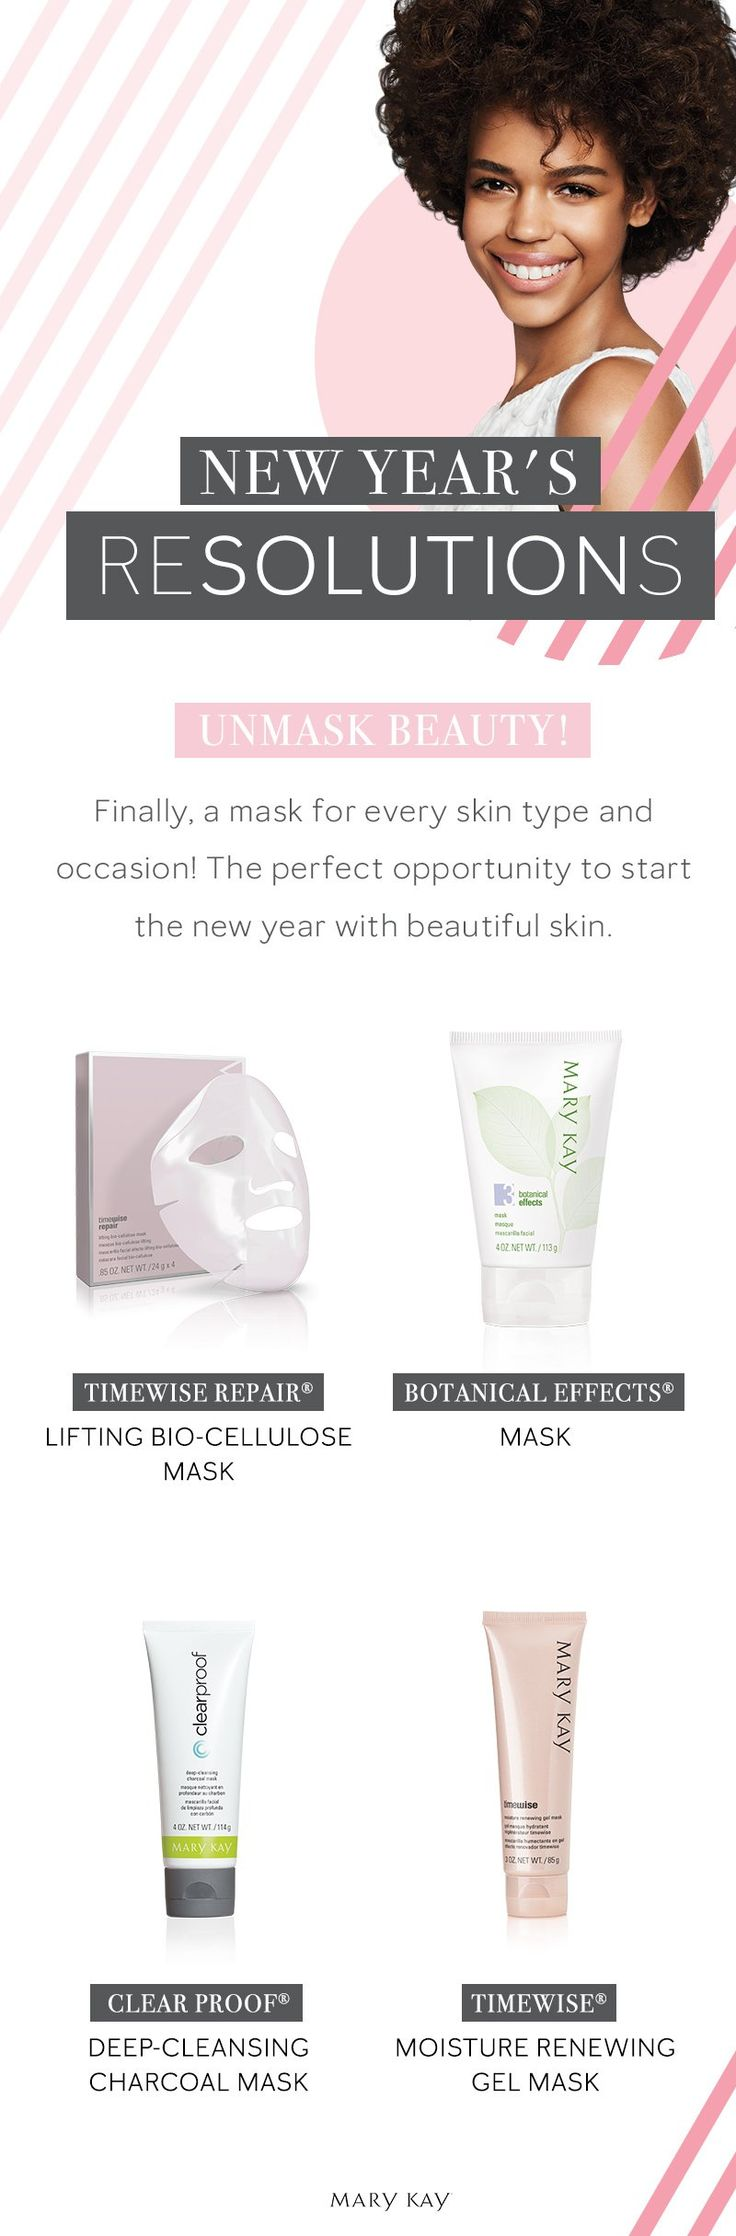 Resolutions meet our skin care solutions! Uncover beautiful skin with masks for every skin type. | Mary Kay